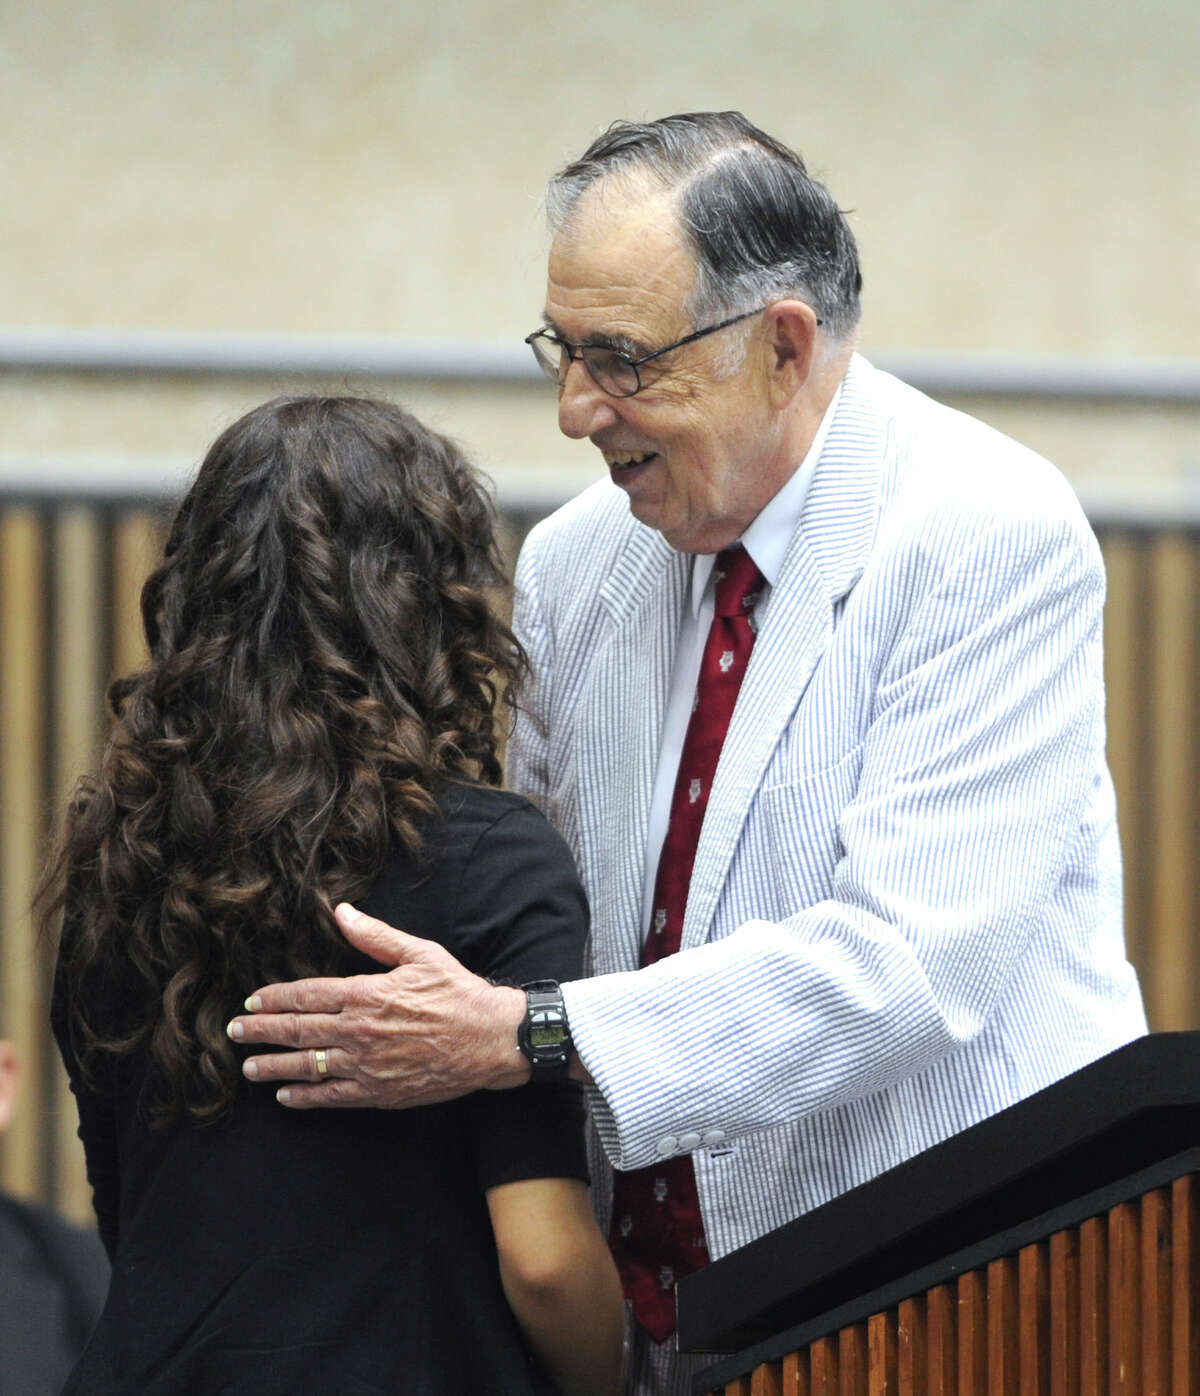 PREP program founder Manuel Berriozabal congratulates student Karla Estrada, of Health Careers High School, who won a scholarship during the PREP Closing Day Assembly at the UTSA Convocation Center on Tuesday, July 31, 2012.